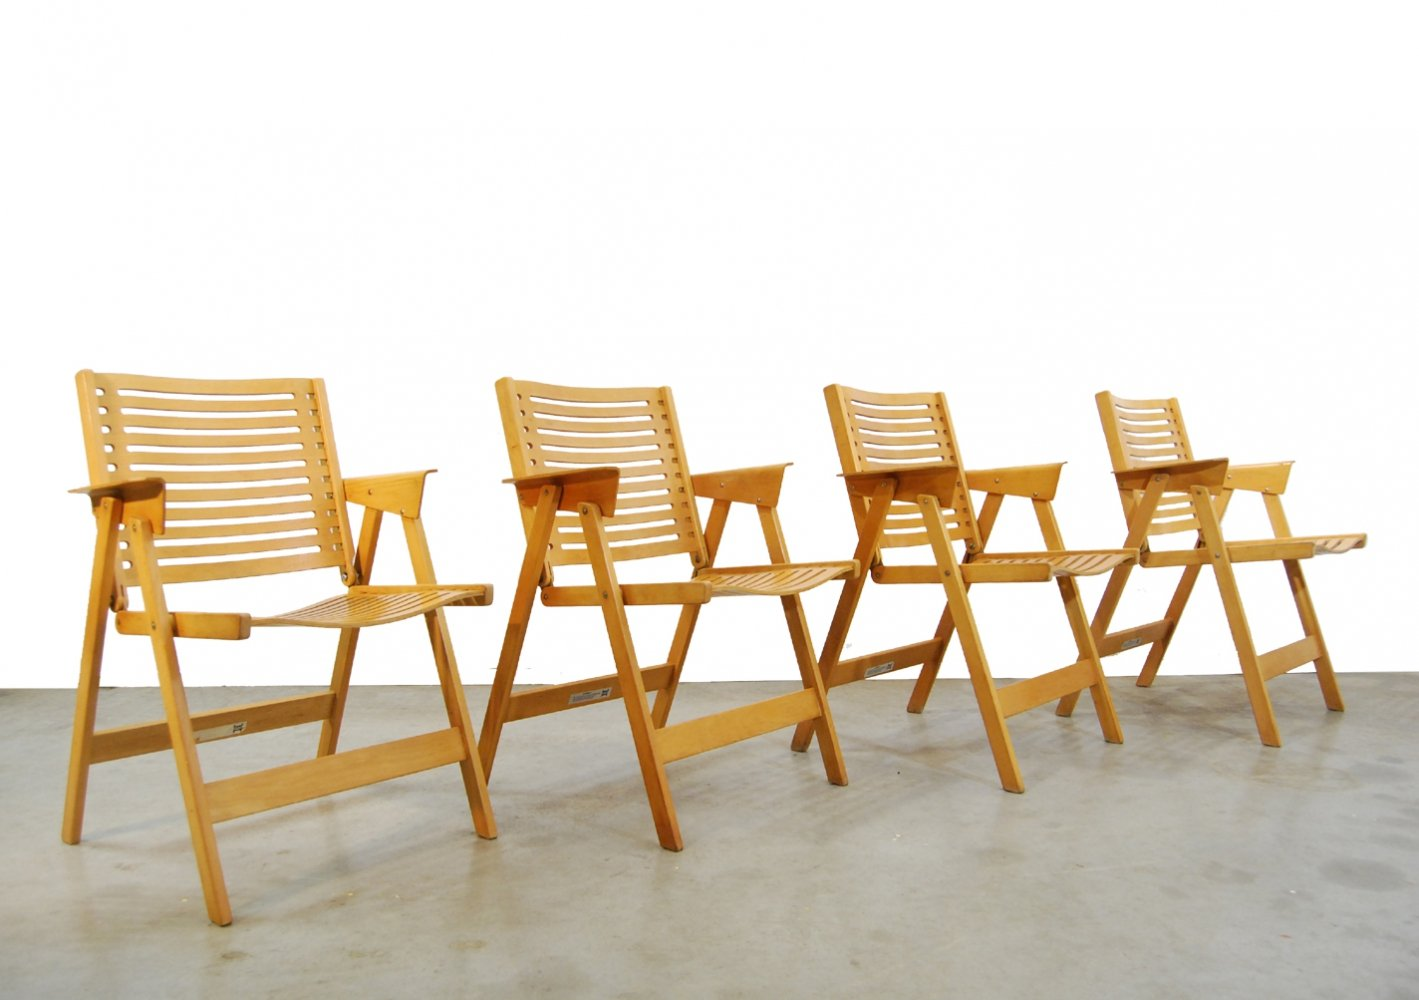 Vintage set of 4 Rex folding chairs by Niko Kralj for Stol, 1950s